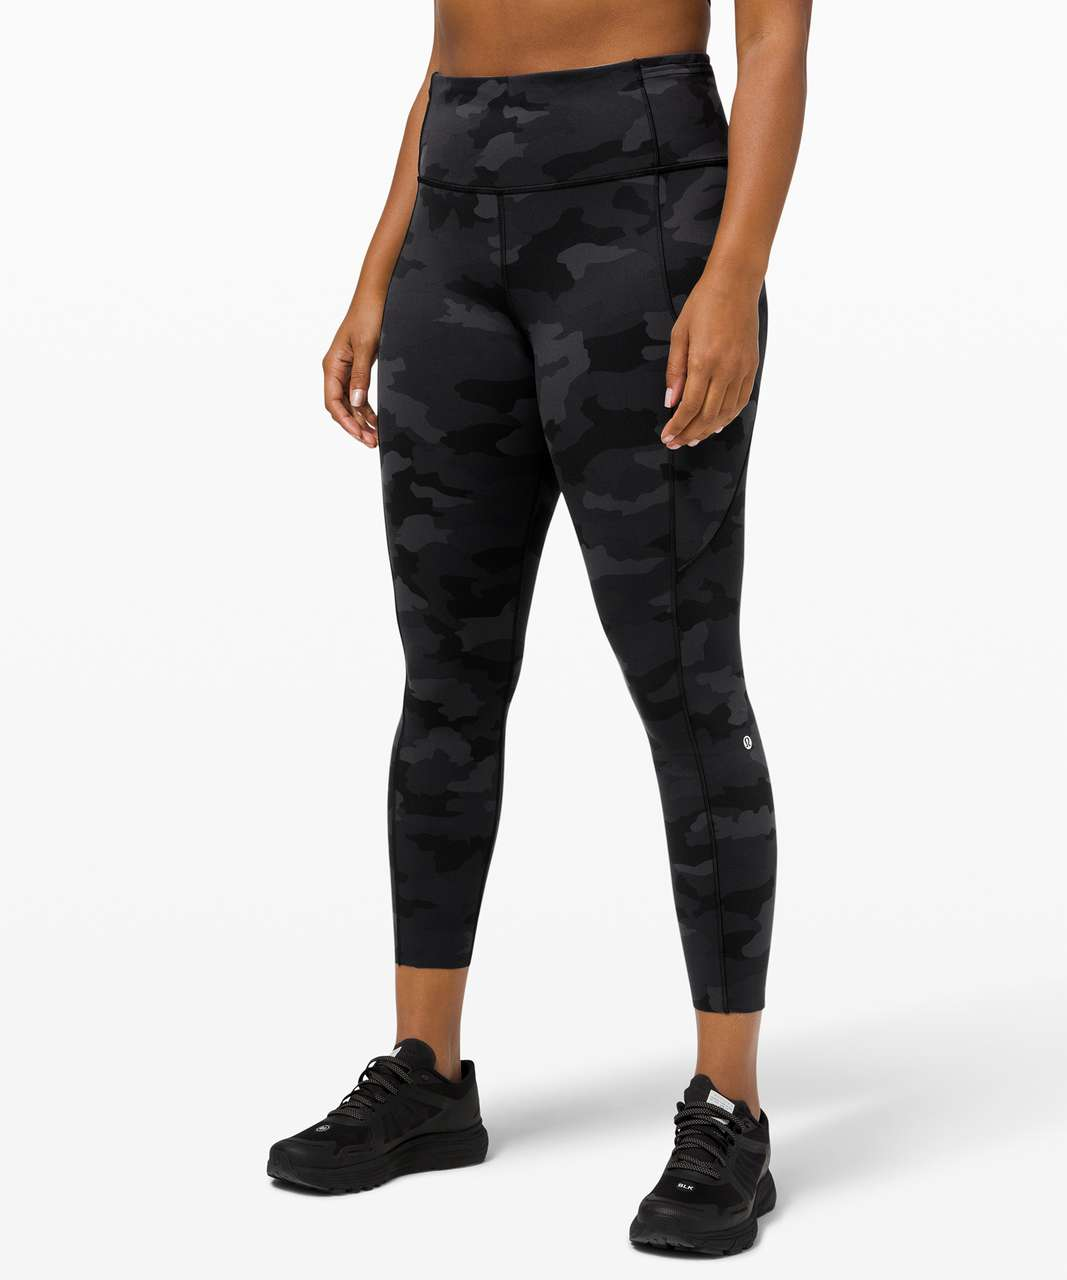 "Lululemon Fast and Free Tight II 25"" *Non-Reflective Nulux - Heritage 365 Camo Deep Coal Multi"